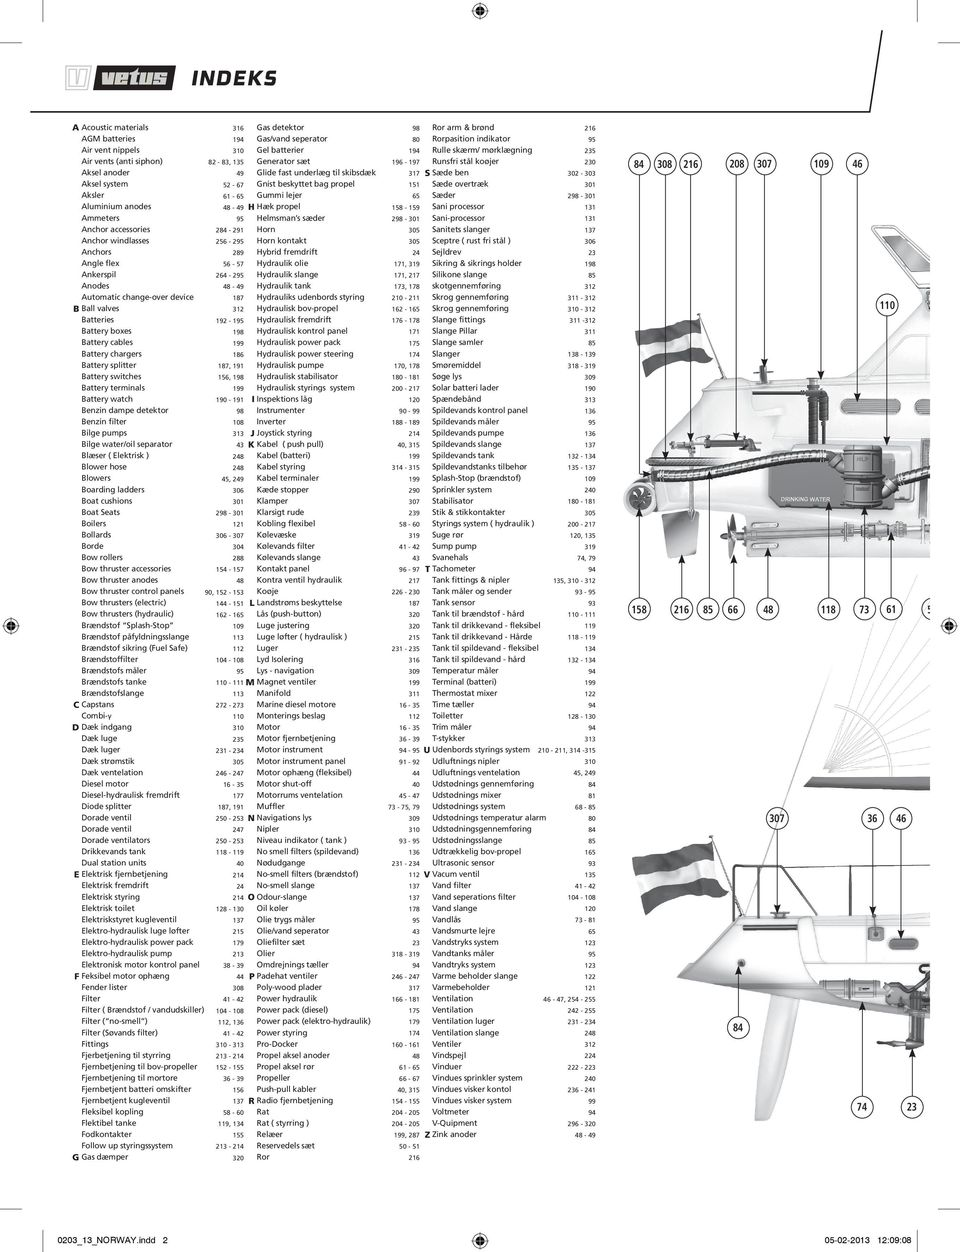 detektor Benzin filter Bilge pumps Bilge water/oil separator Blæser ( Elektrisk ) Blower hose Blowers Boarding ladders Boat cushions Boat Seats Boilers Bollards Borde Bow rollers Bow thruster